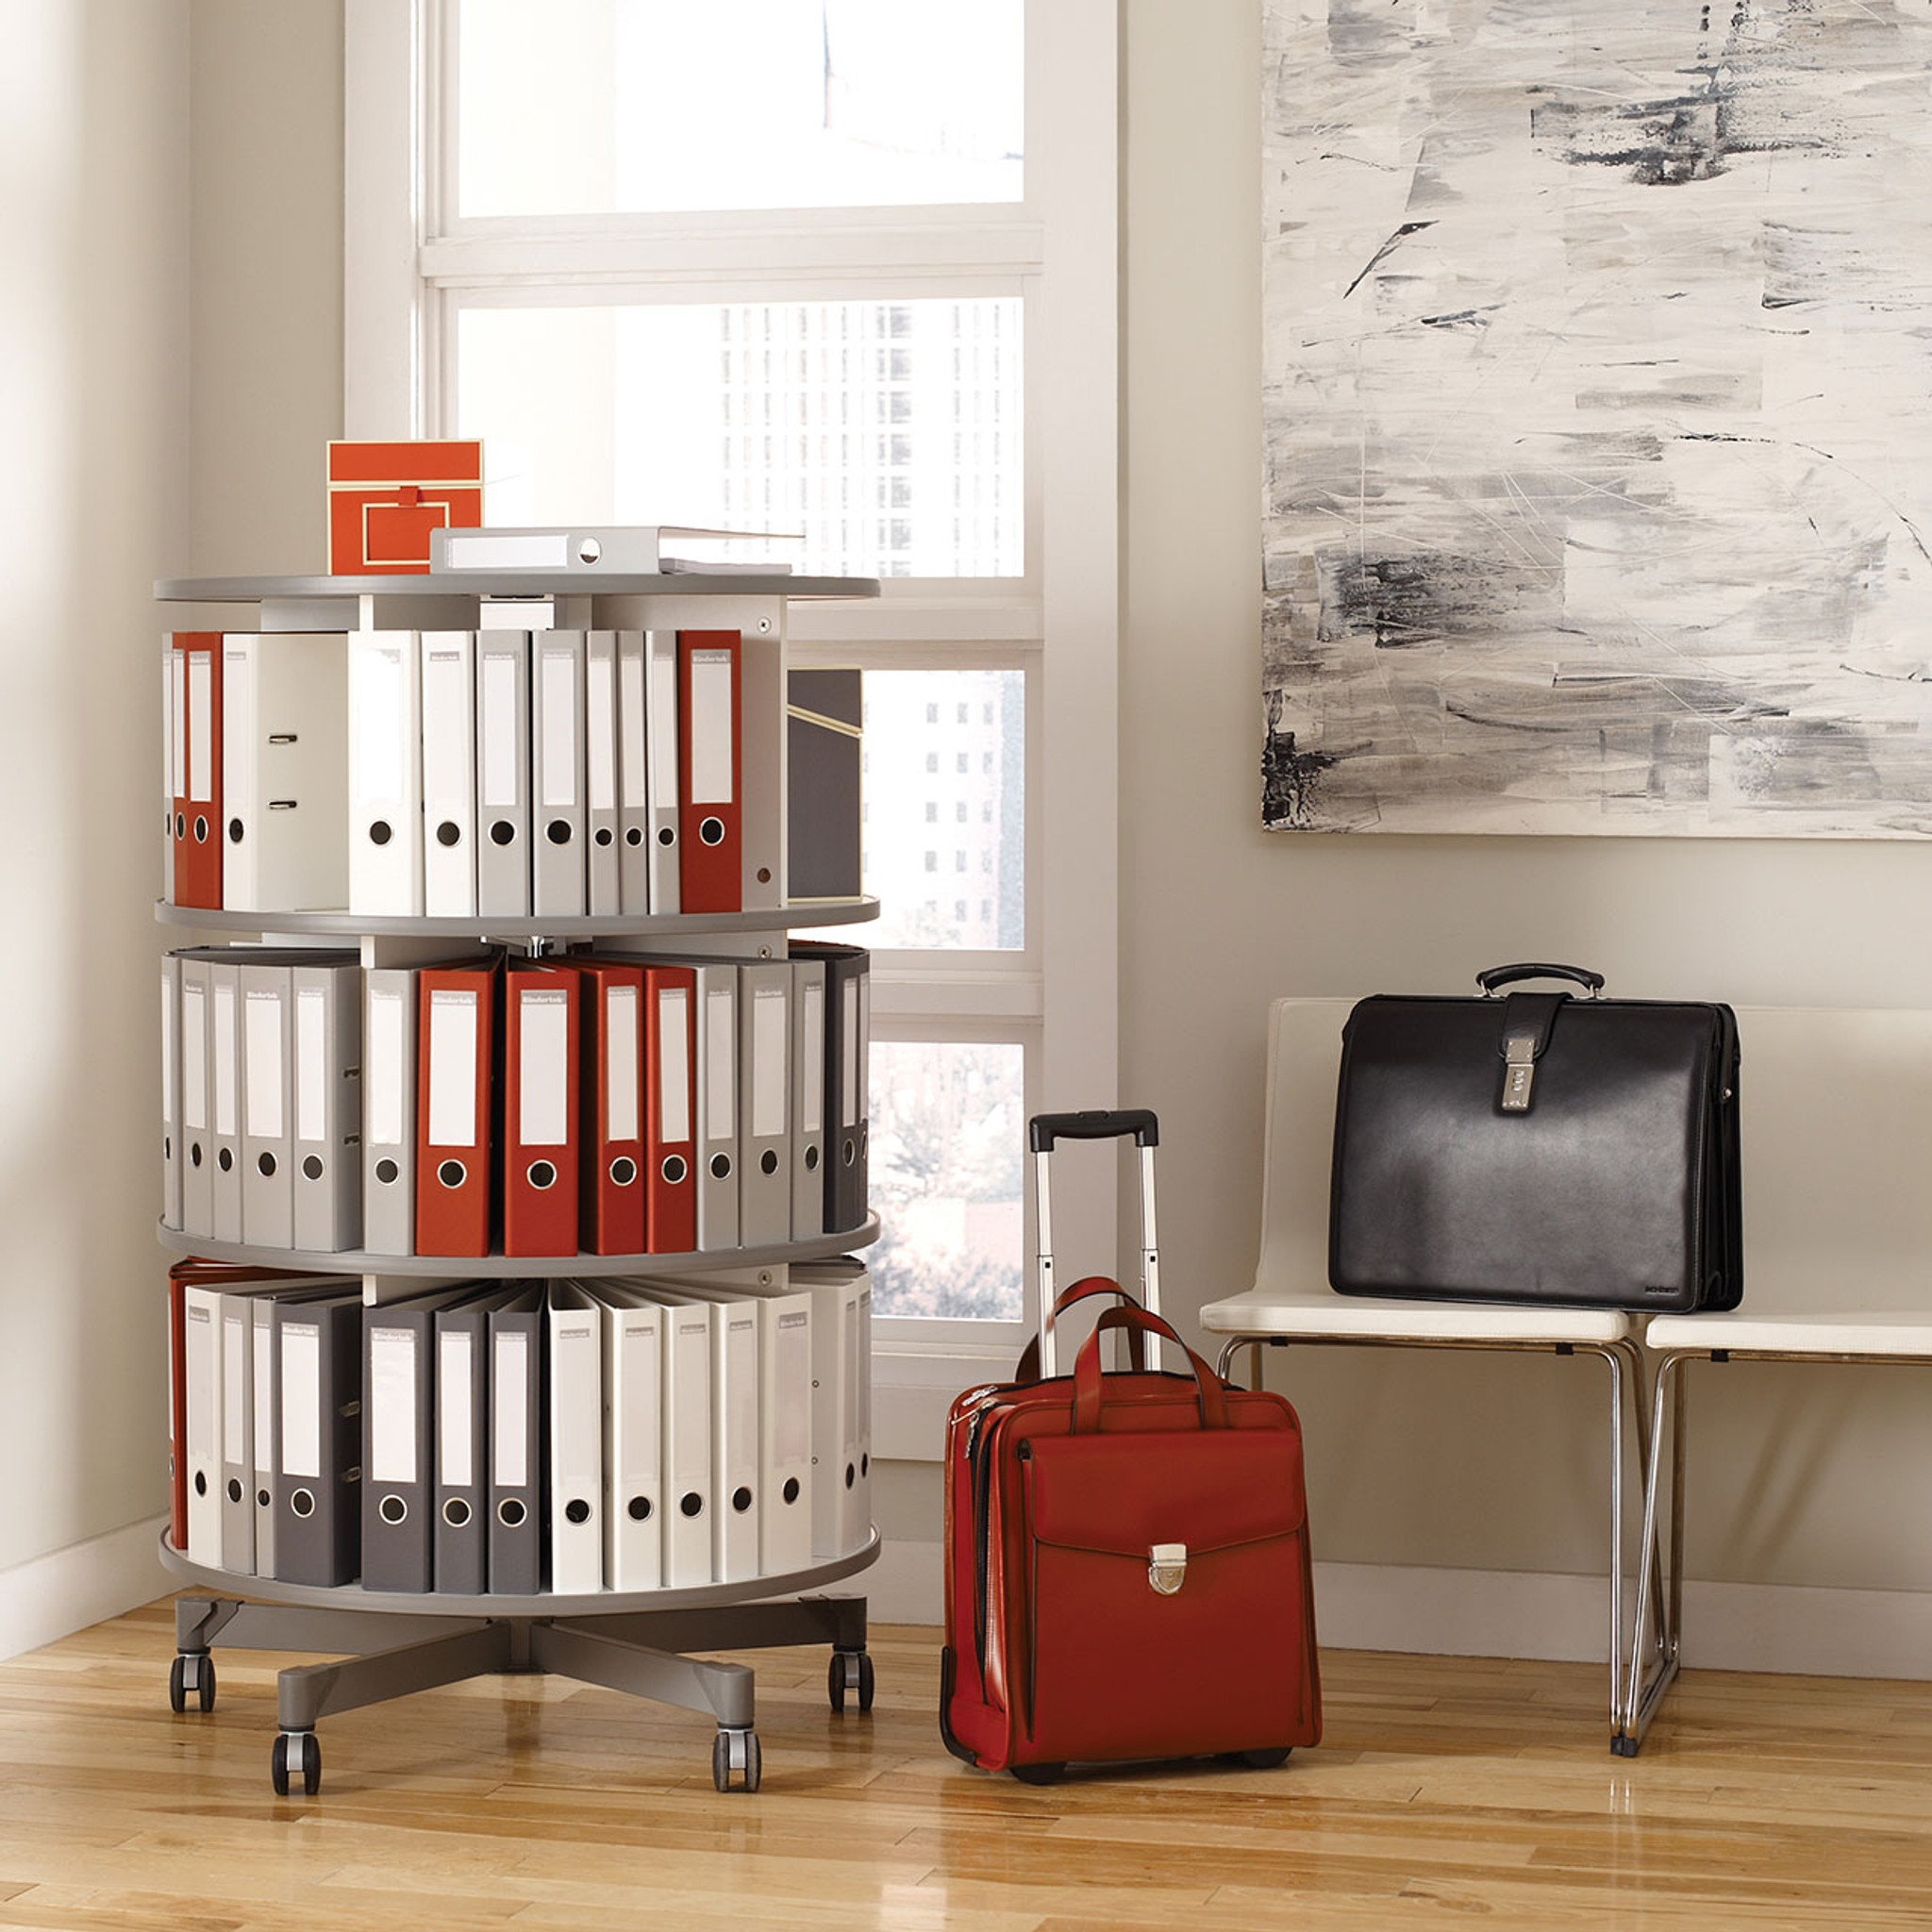 Moll One Turn Binder & File Carousel, 3-Tier Shelving